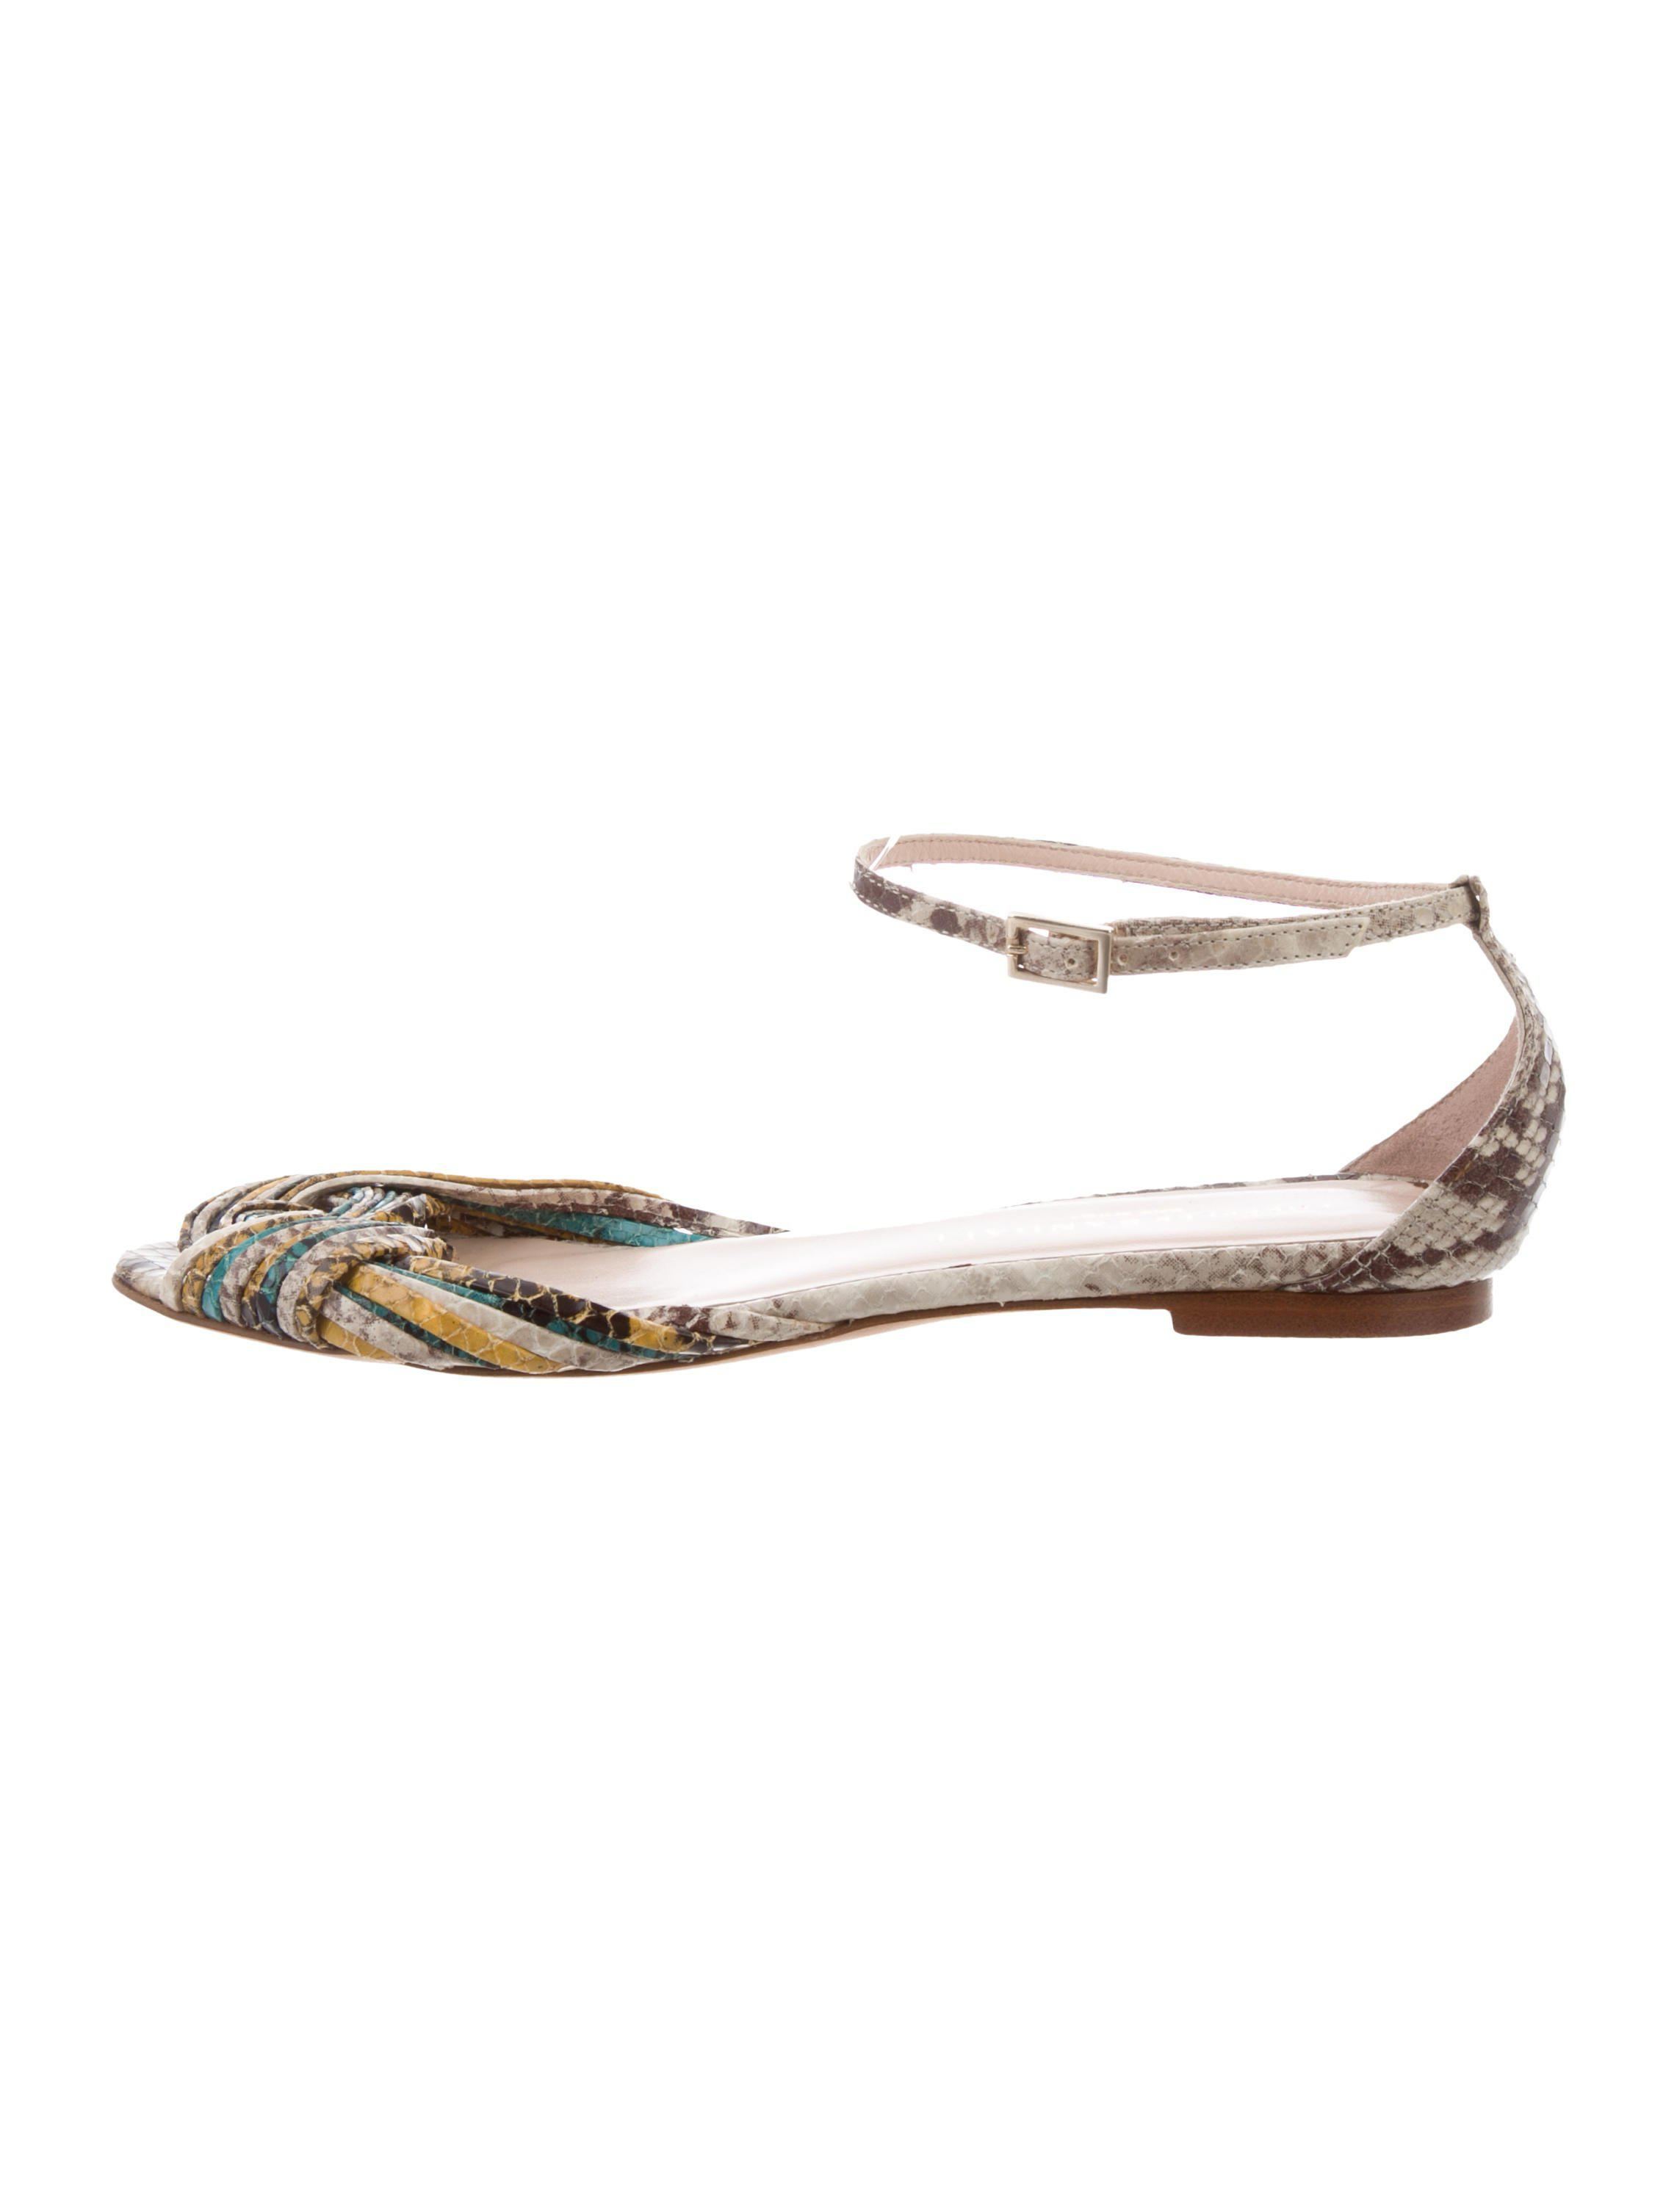 discount footlocker Loeffler Randall Twist-Accented Snakeskin Sandals sale limited edition Cheapest under $60 online from china sale online A48y92